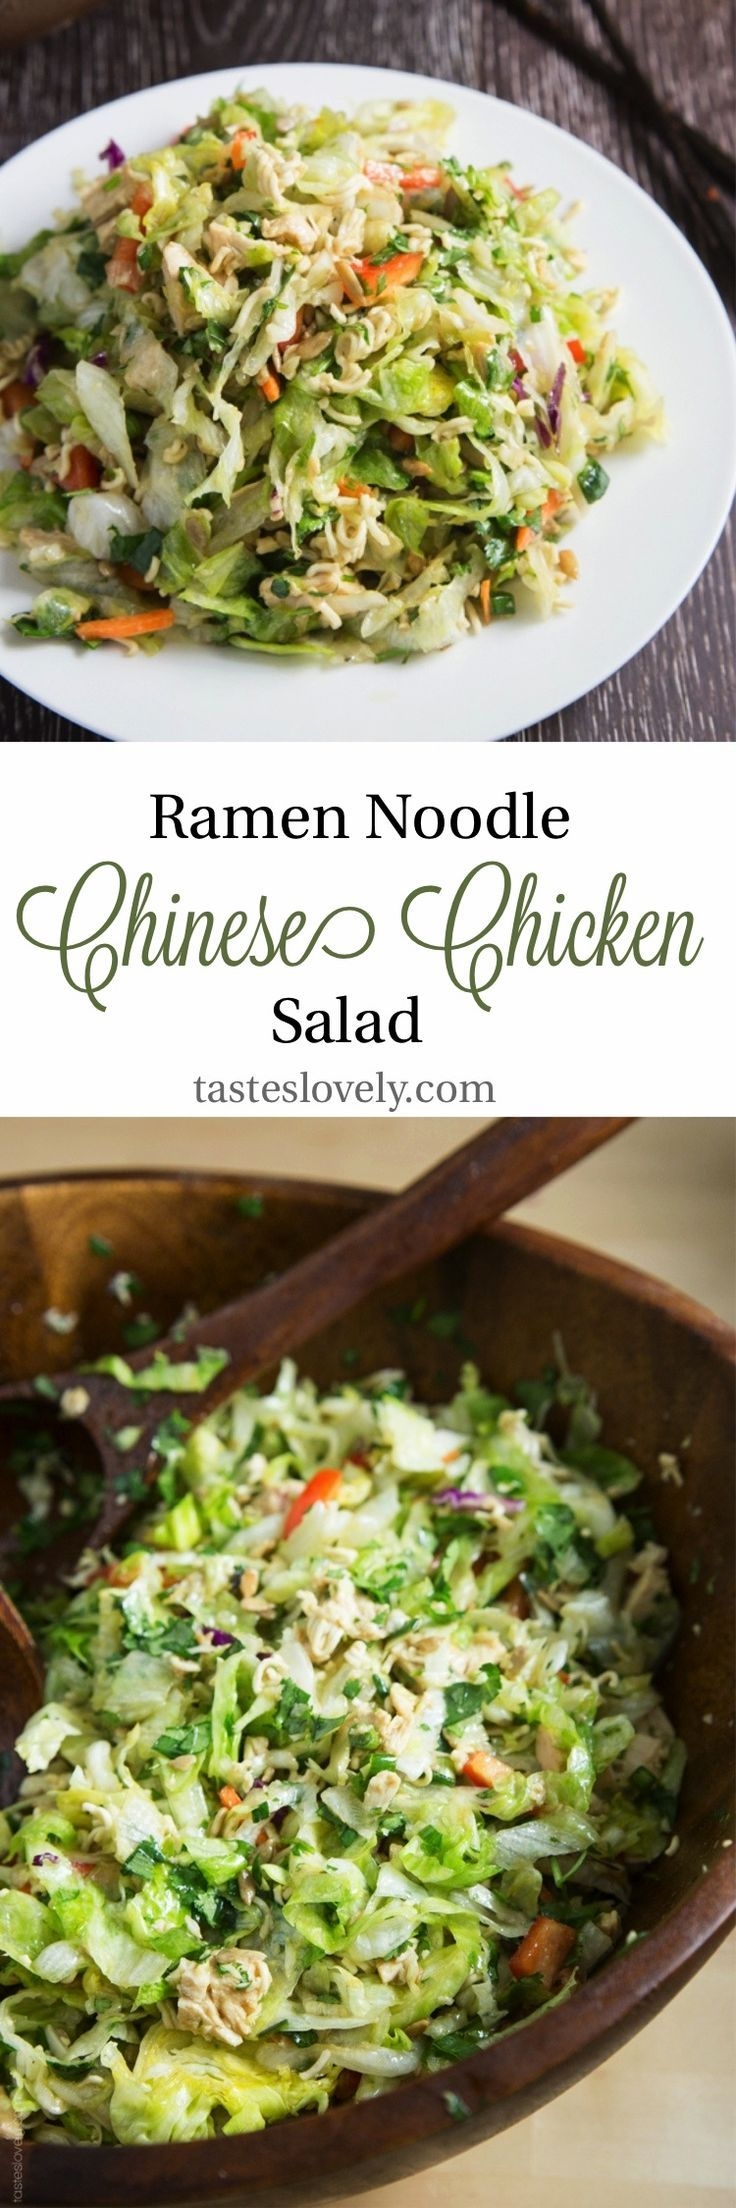 This recipe is the BEST! Crunchy ramen noodle Chinese chicken salad